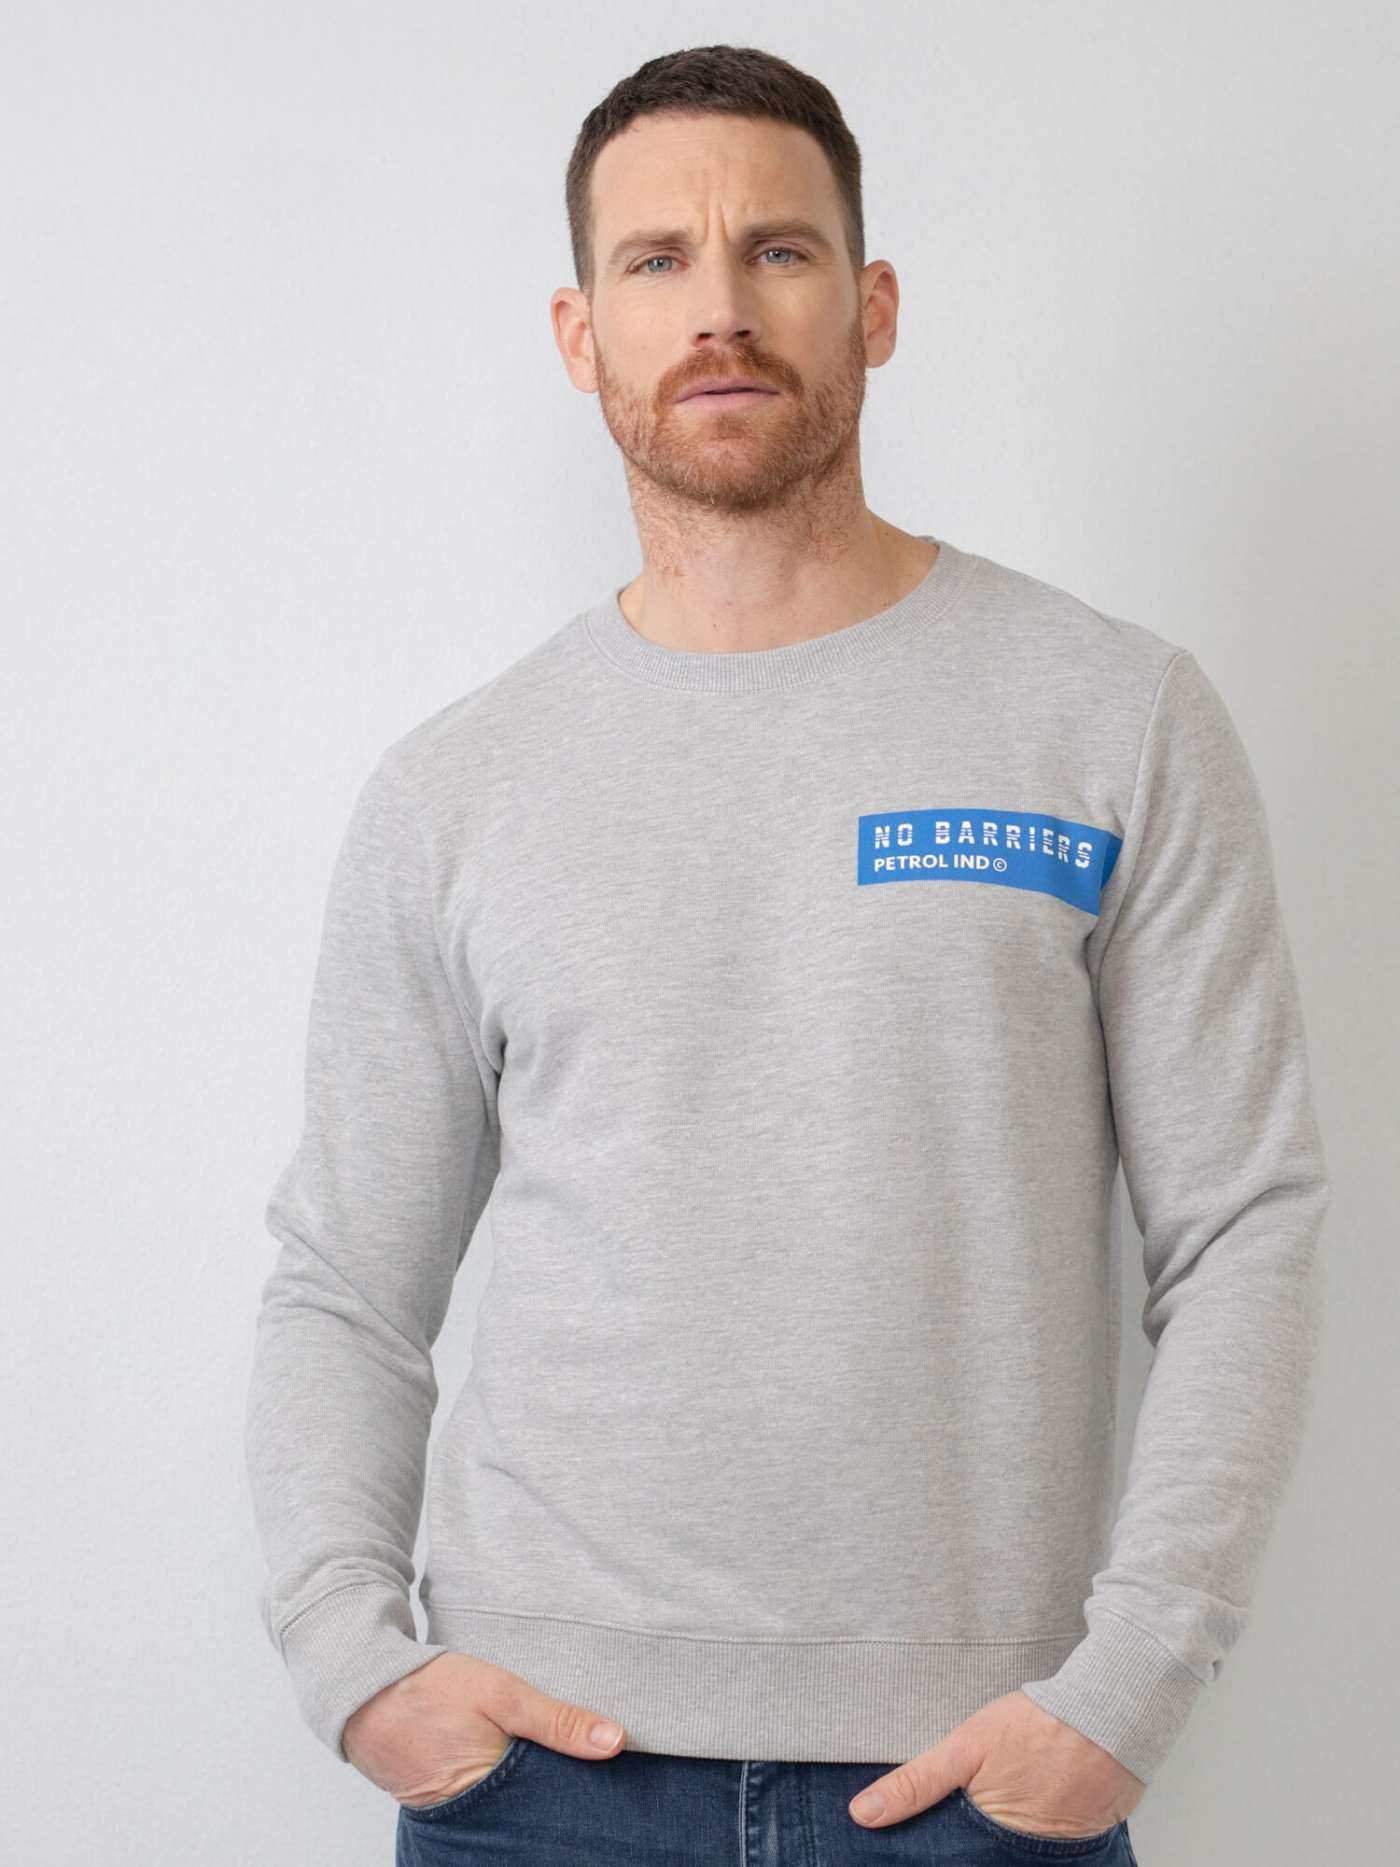 No Barriers Sweater